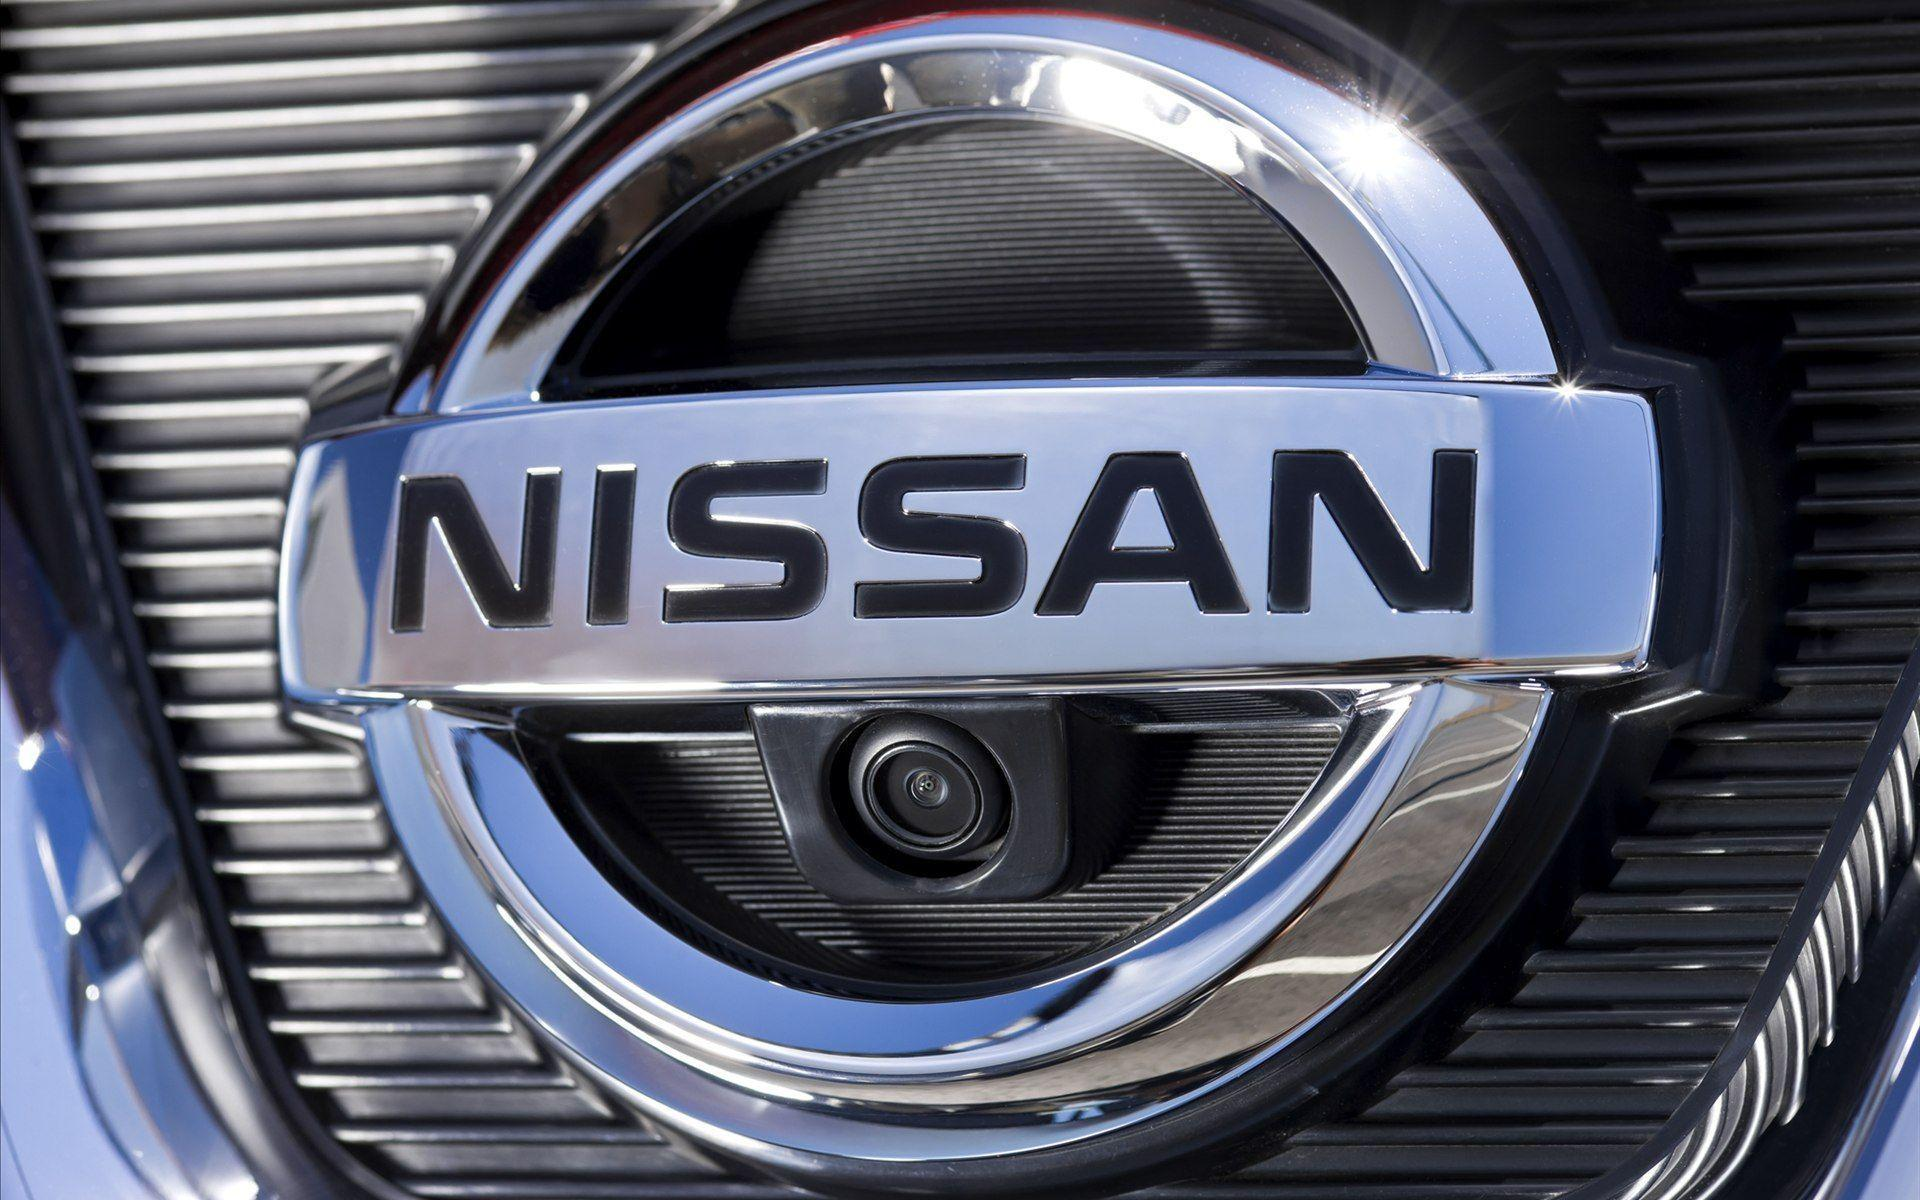 Nissan Logo Wallpaper Download For Iphone #7820 Wallpaper | Wallshed.